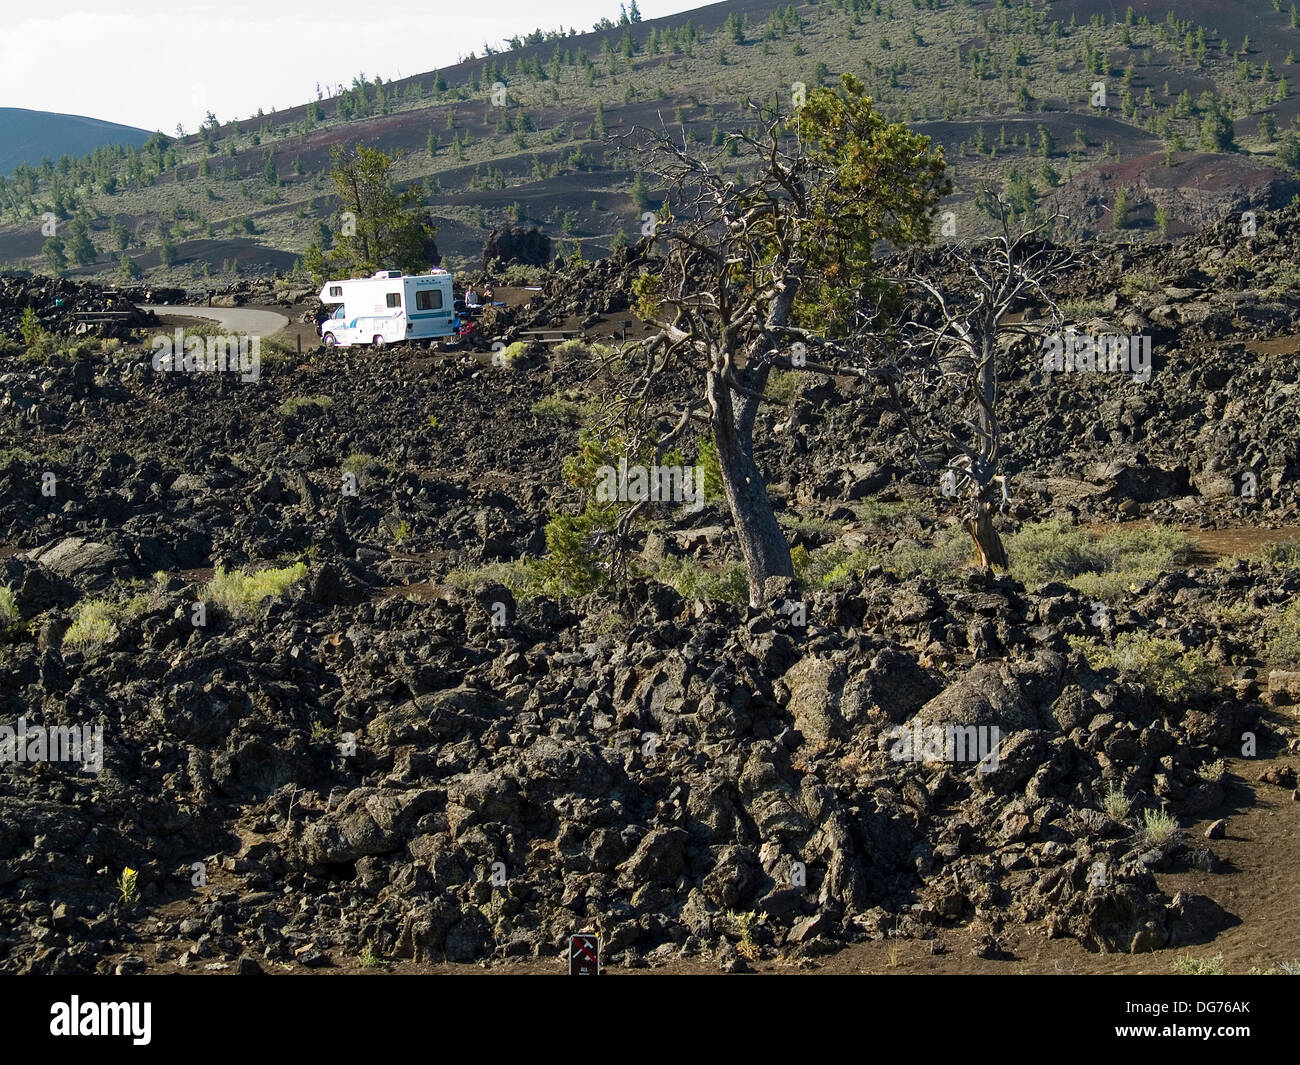 Motorhome in the lava fields of Craters of The Moon National Monument,Idaho - Stock Image